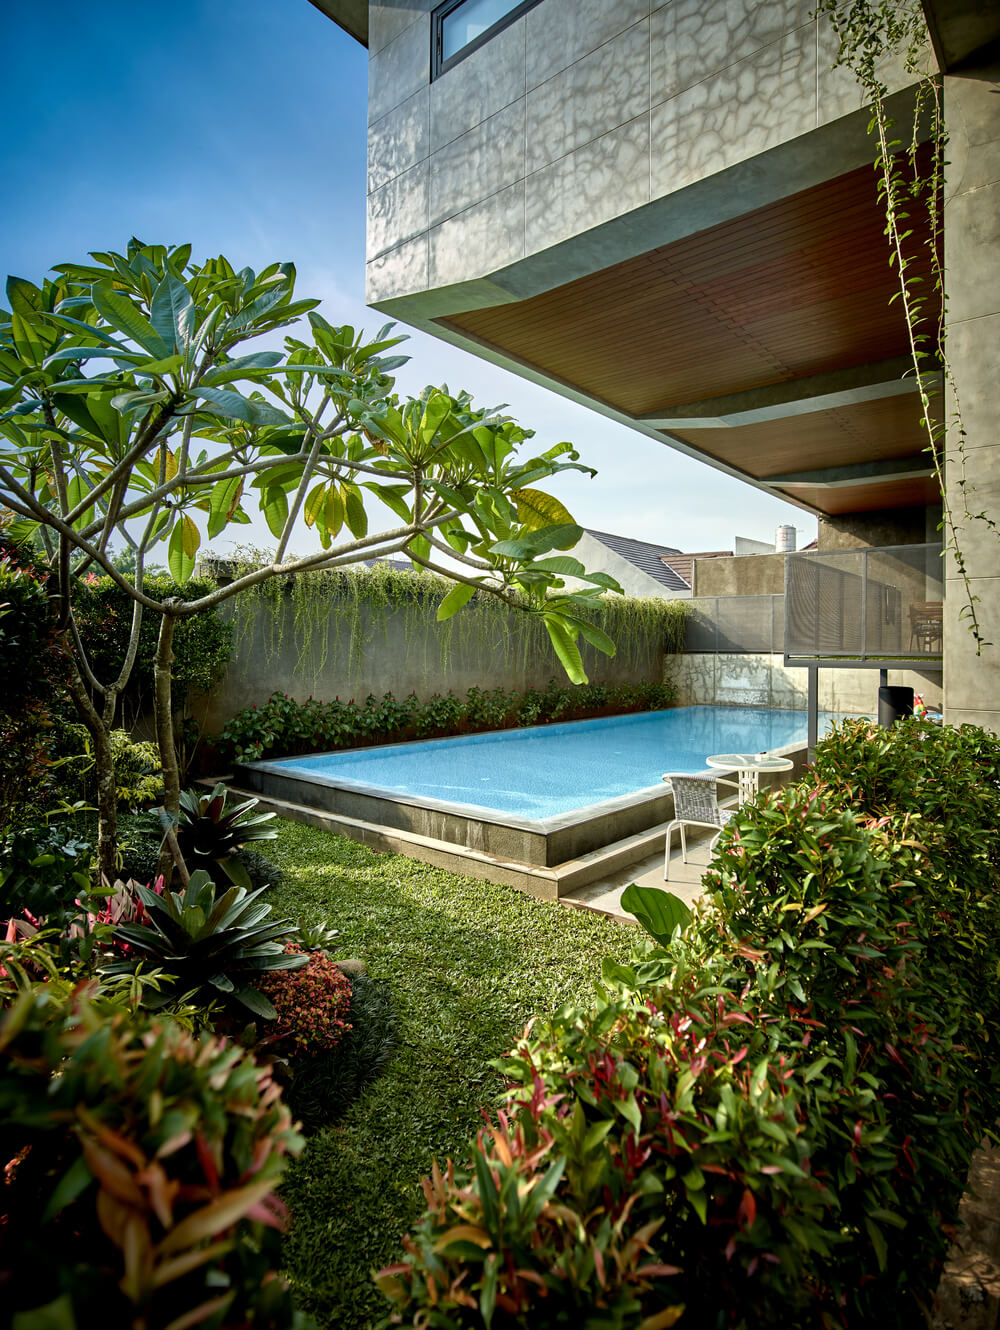 This is the pool area of the house surrounded by lush landscaping and concrete walls.